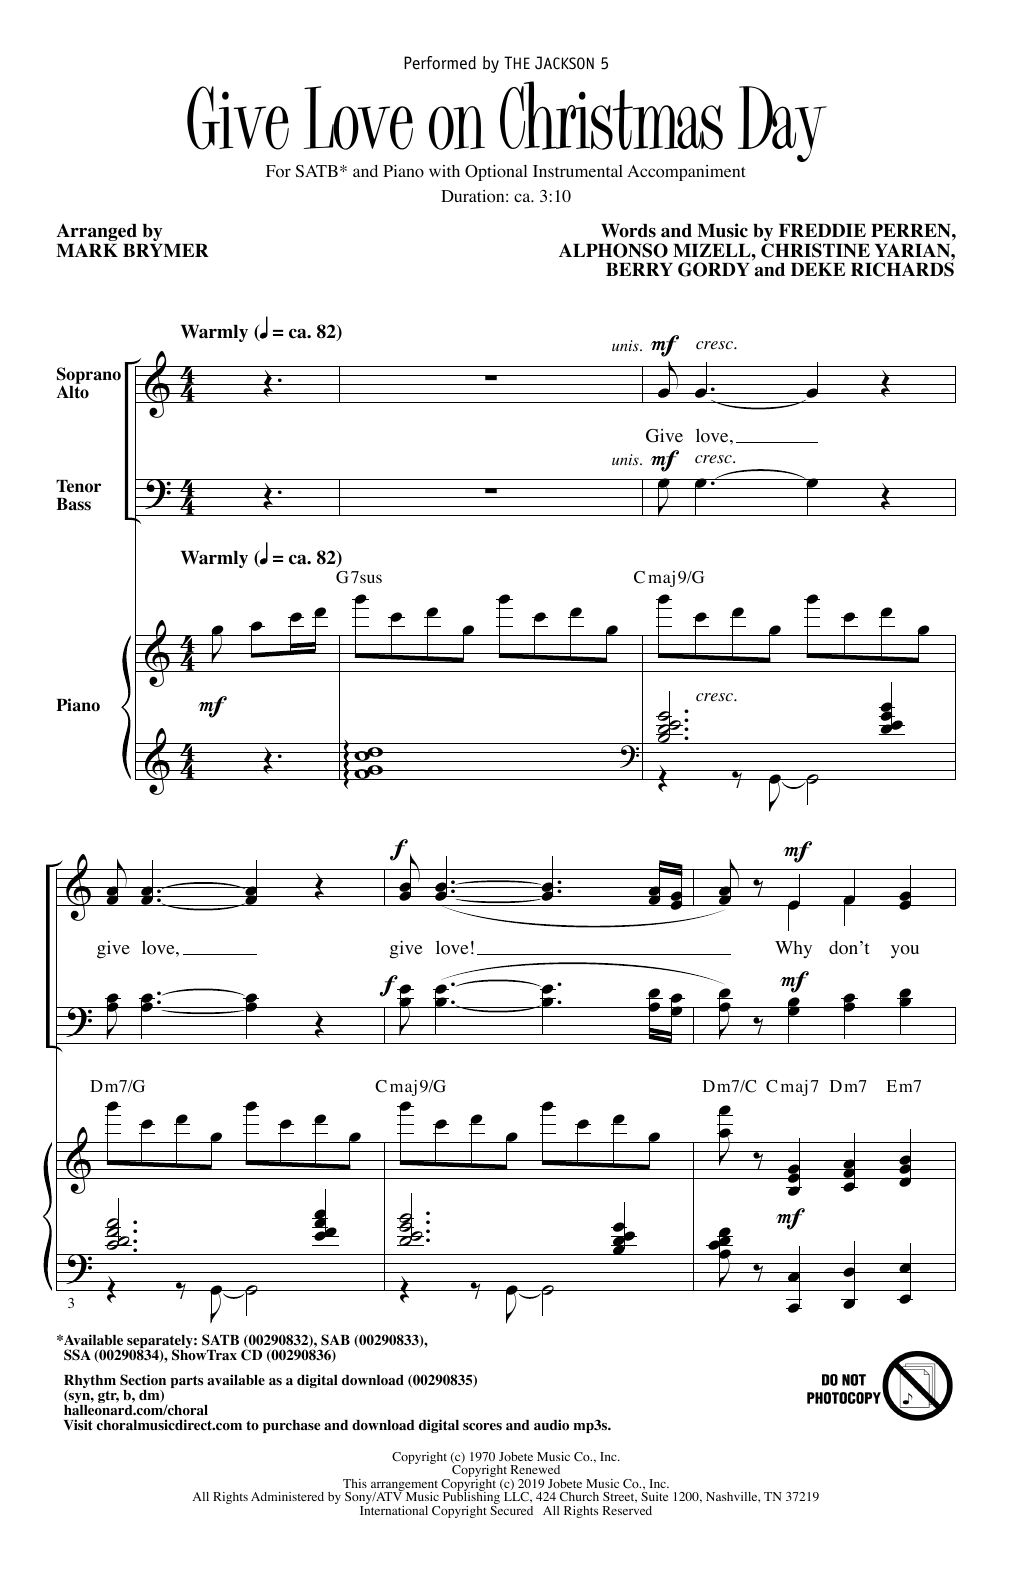 The Jackson 5 Give Love On Christmas Day (arr. Mark Brymer) sheet music notes and chords